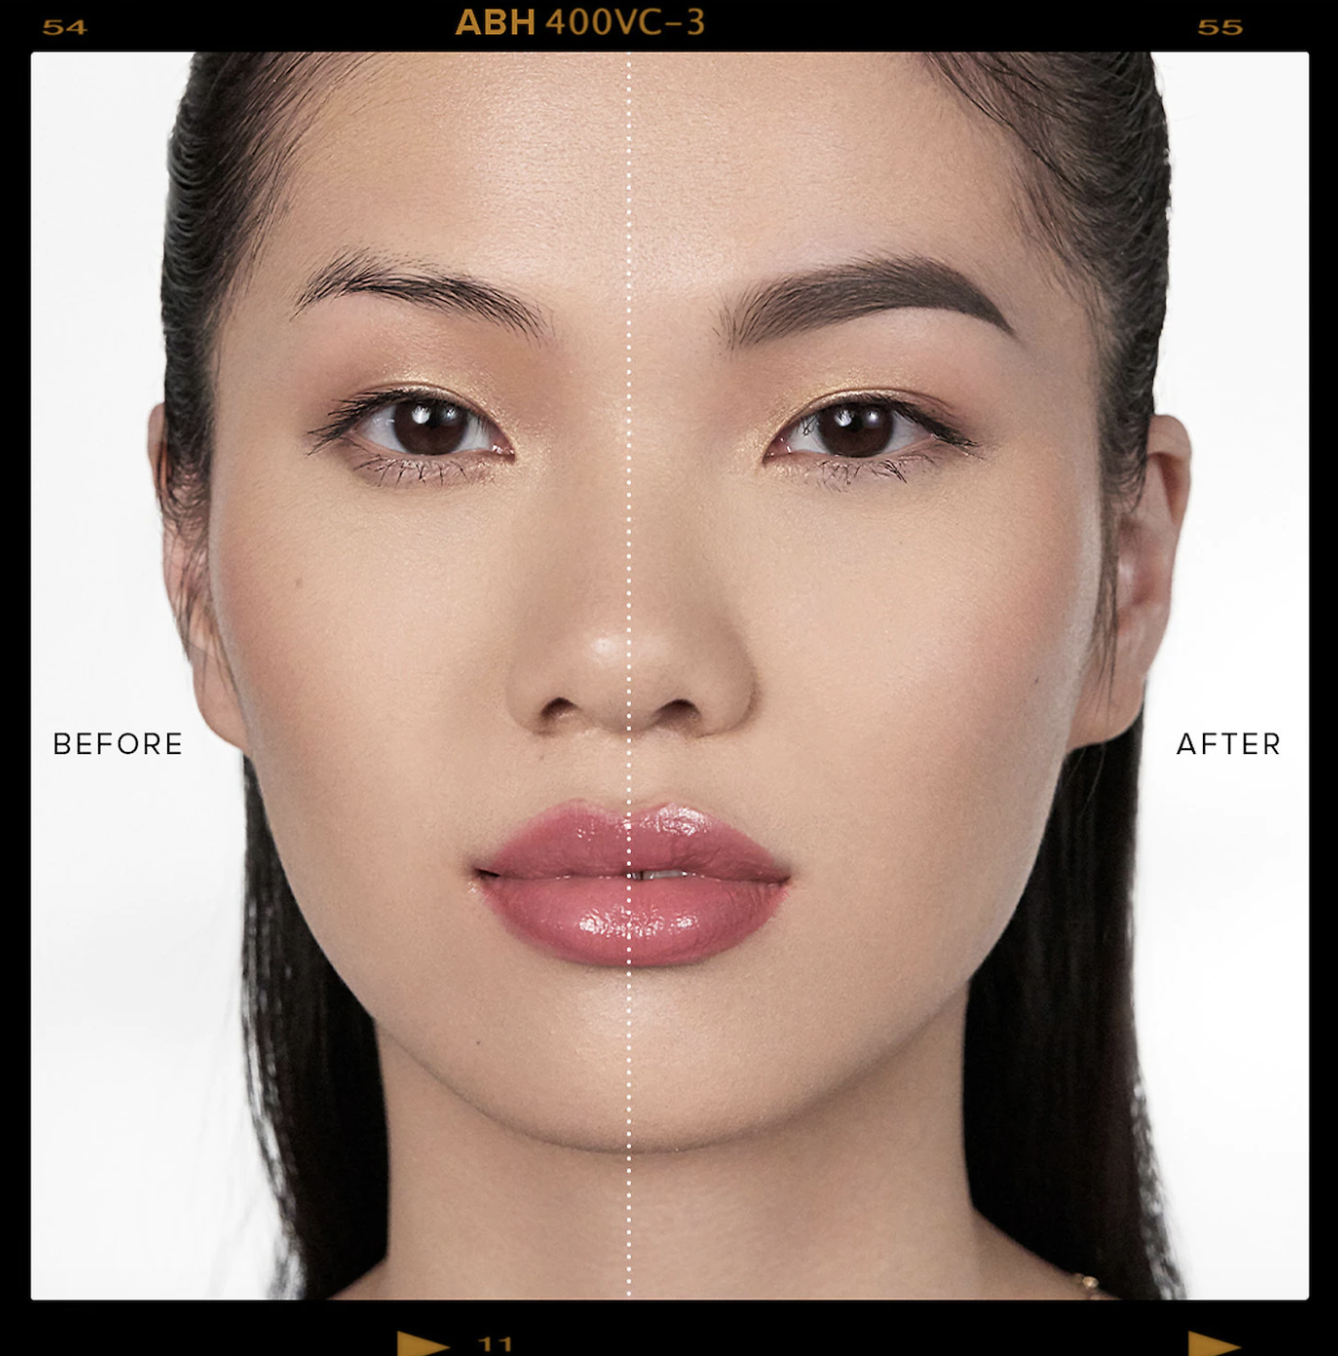 a before and after photo of a model which shows a more defined brow with product